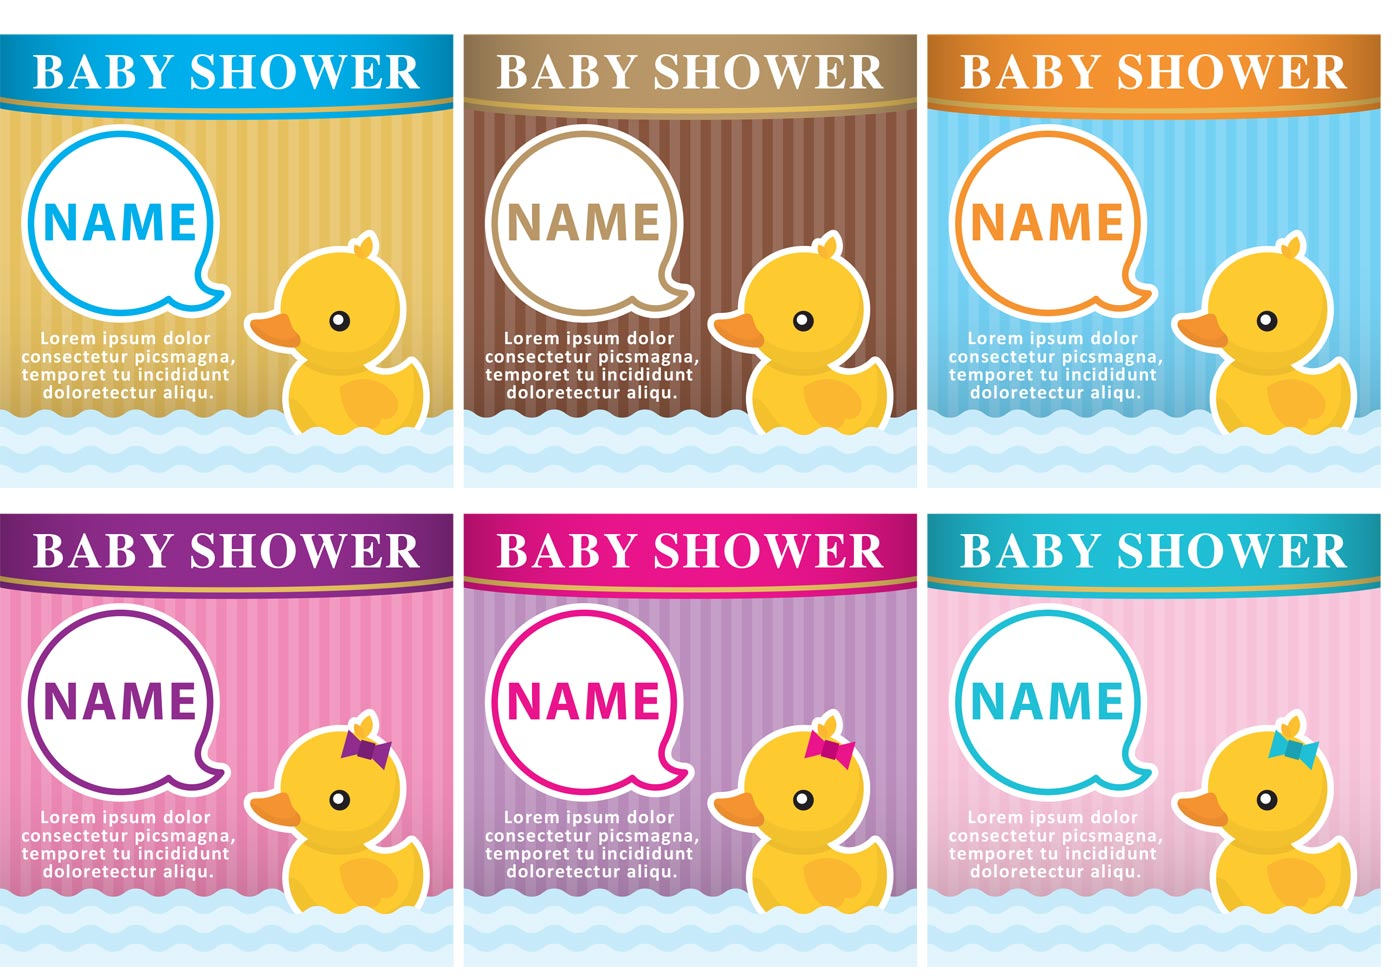 Printable Teddy Bear Baby Shower Invitations is Perfect Ideas To Create Cool Invitation Template